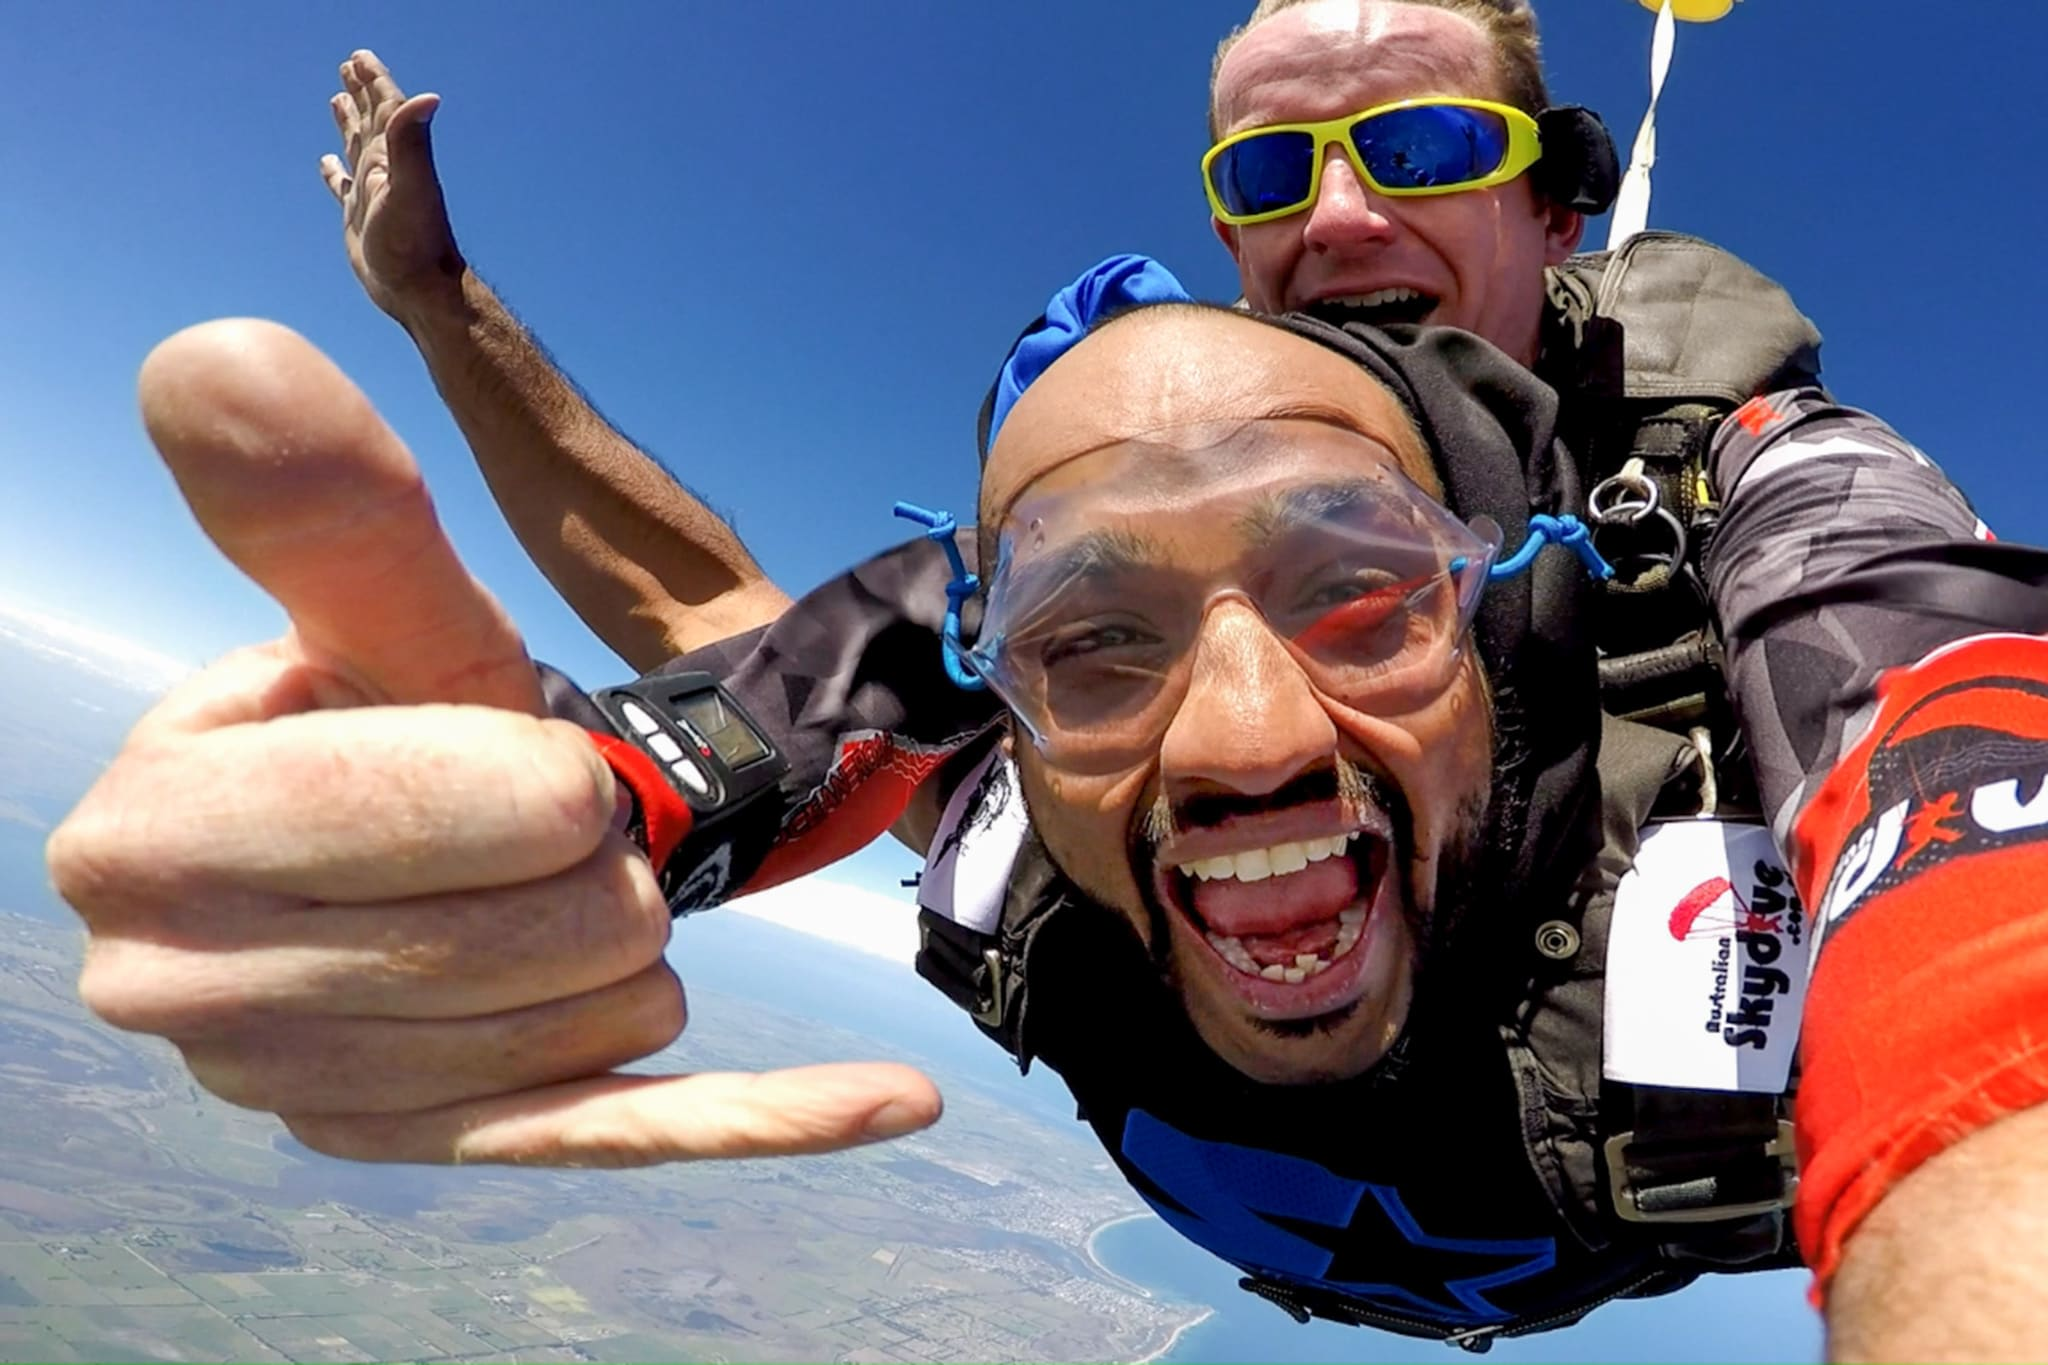 Tandem Skydive up to 14,000ft, Weekday Special - Great Ocean Road, Torquay